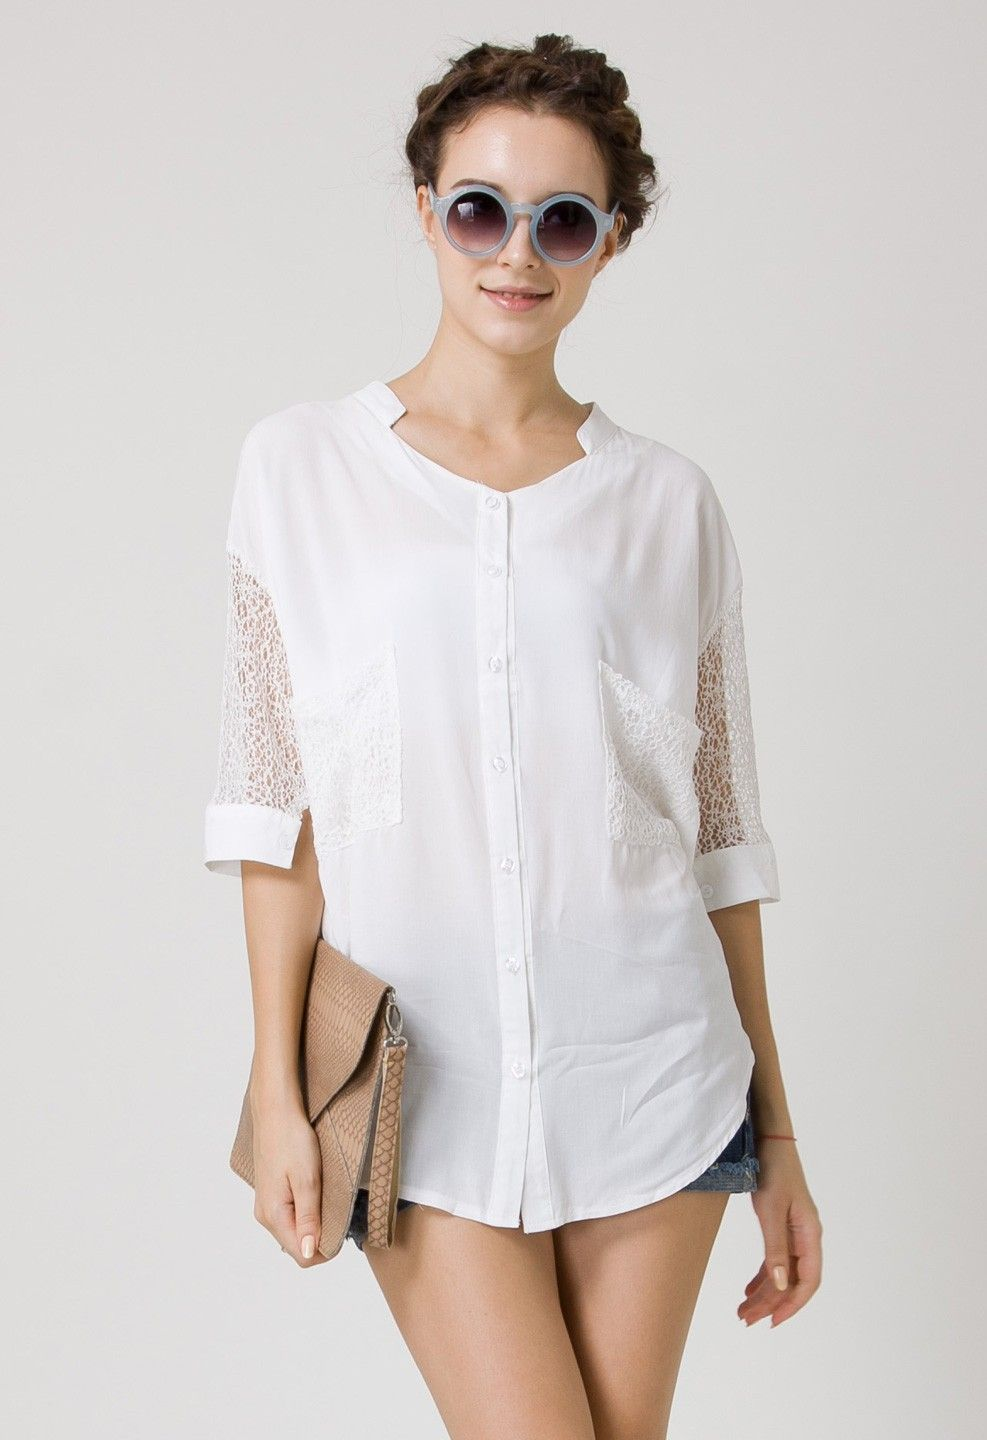 Best Lace Forward Shirt in Black - Retro, Indie and Unique Fashion